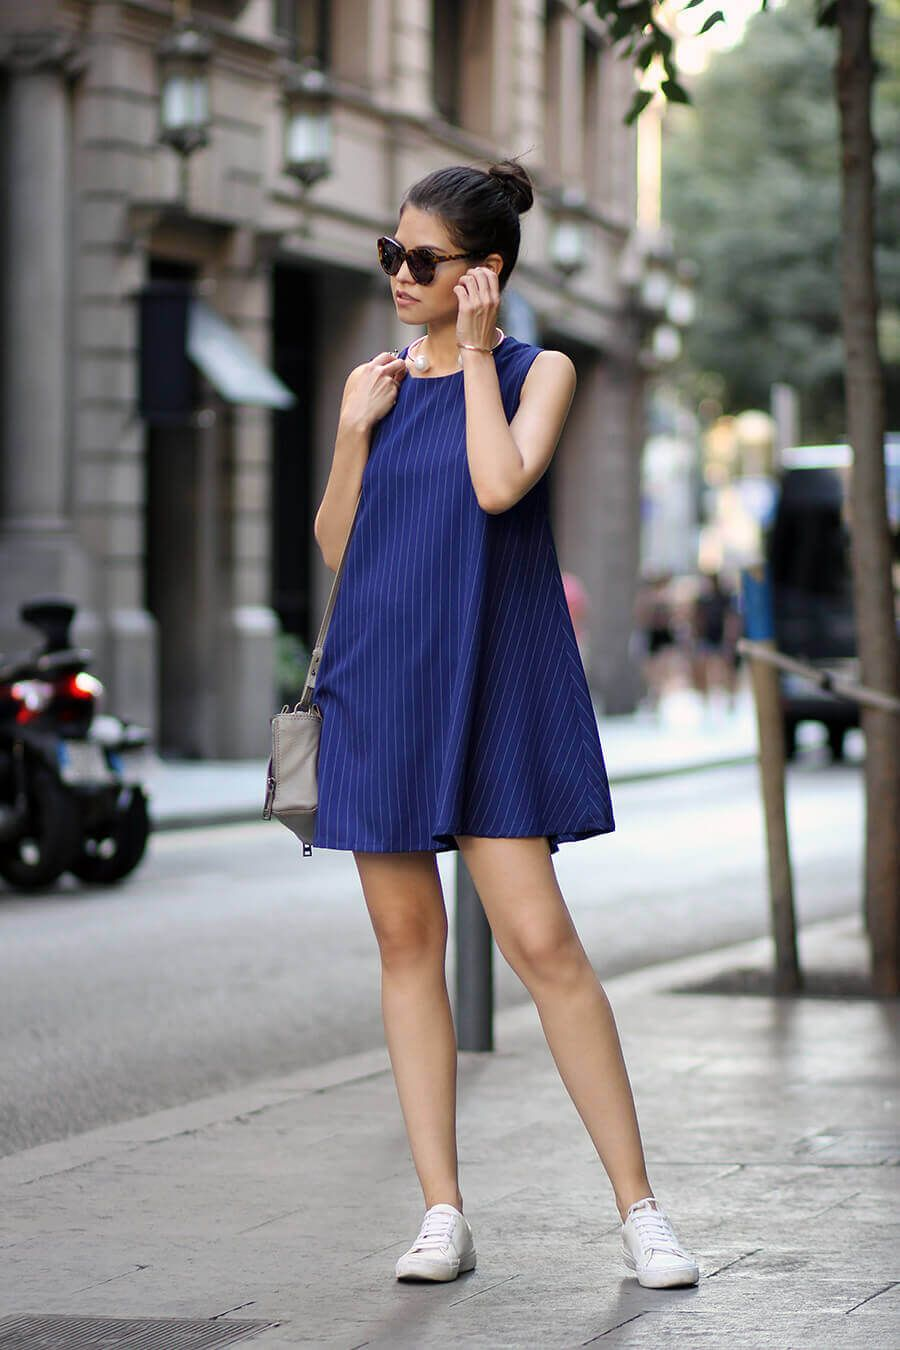 Girls in Picnic Outfits | Dress and sneakers outfit, Dress ...